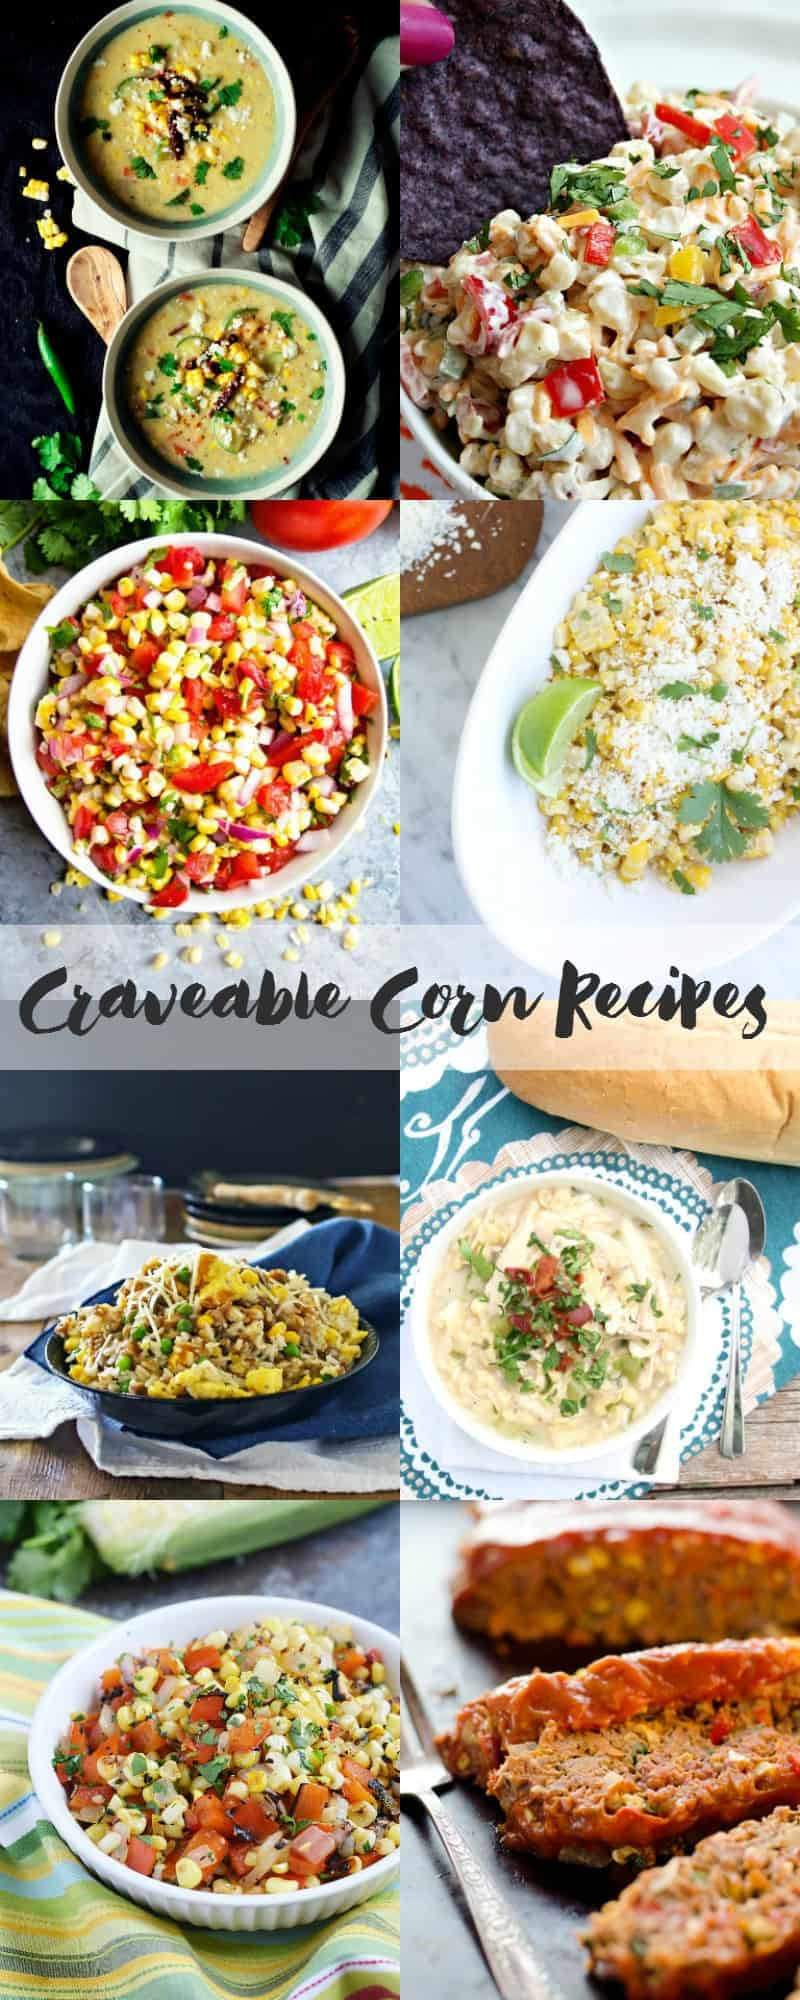 Craveable Corn Recipes | cookingwithcurls.com #feastNdevour